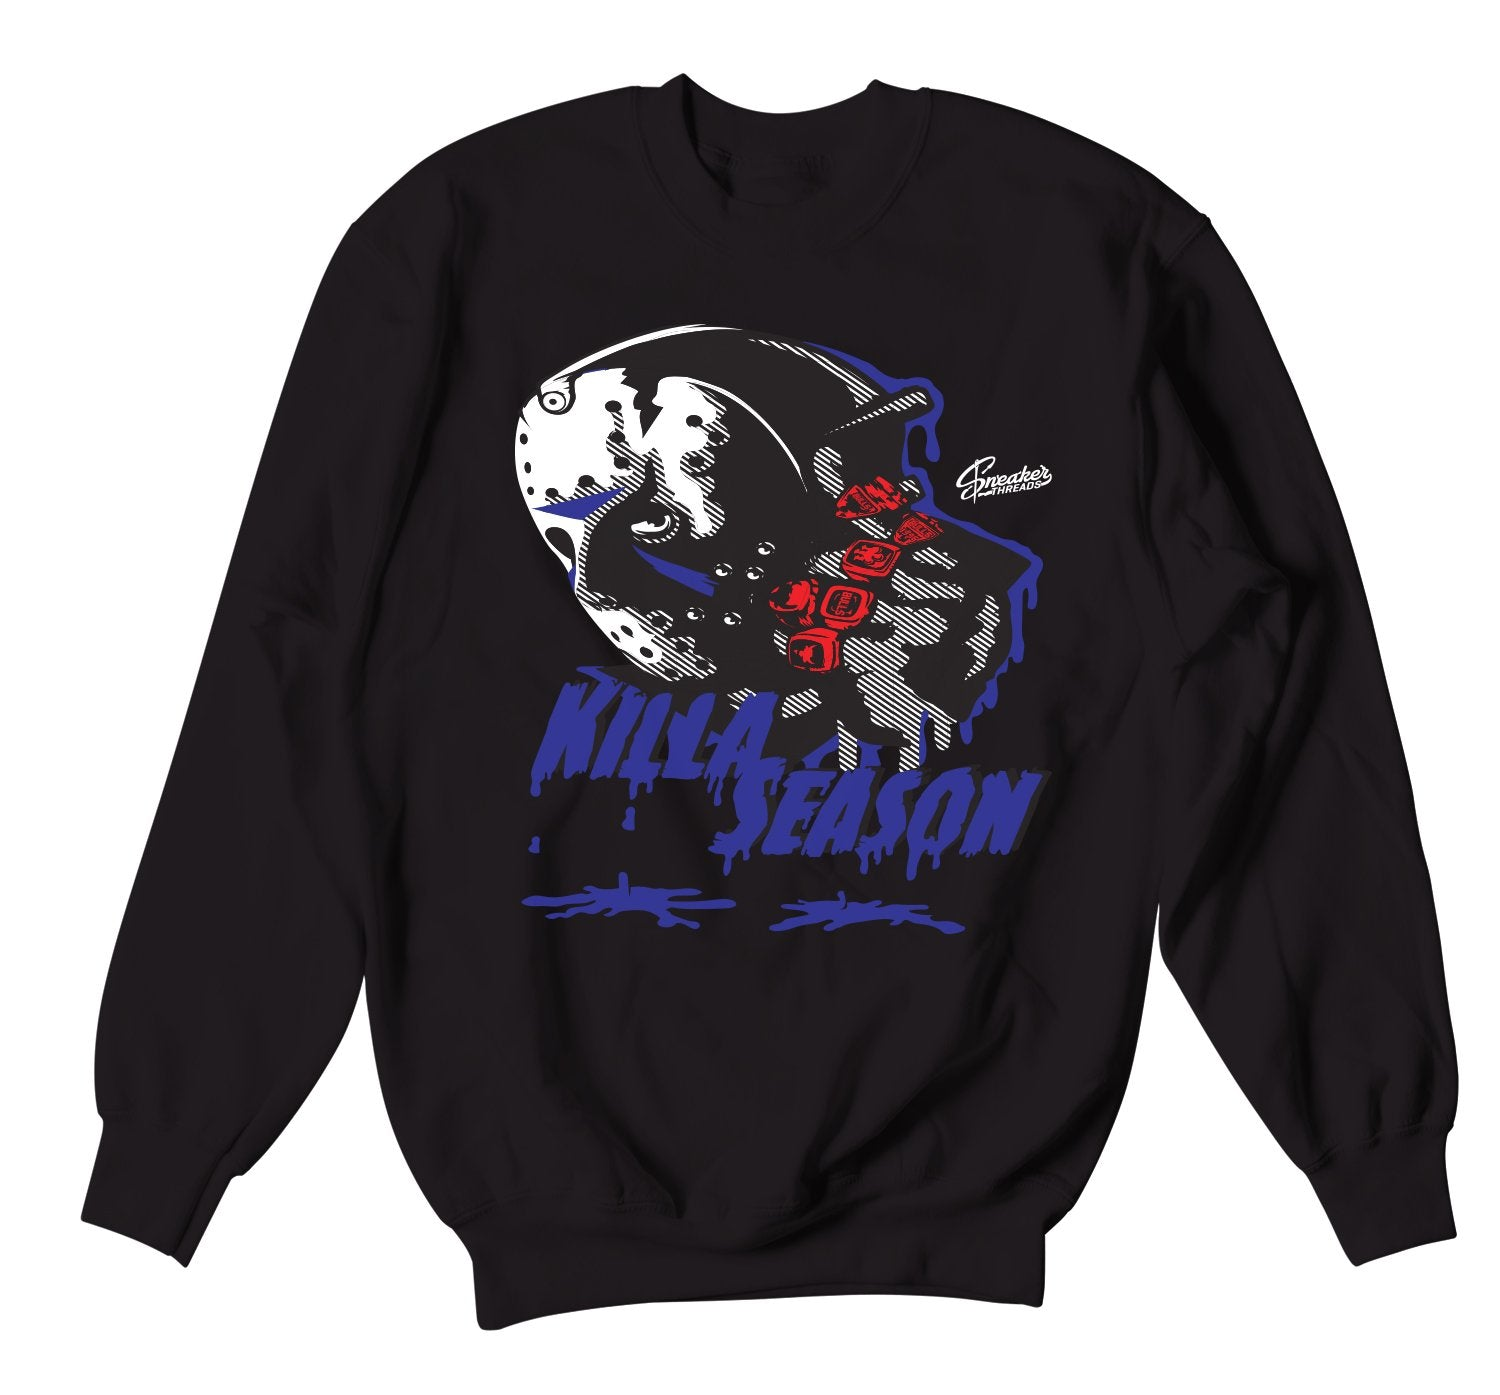 Jordan 4 Loyal Blue Killer sweater to match fit